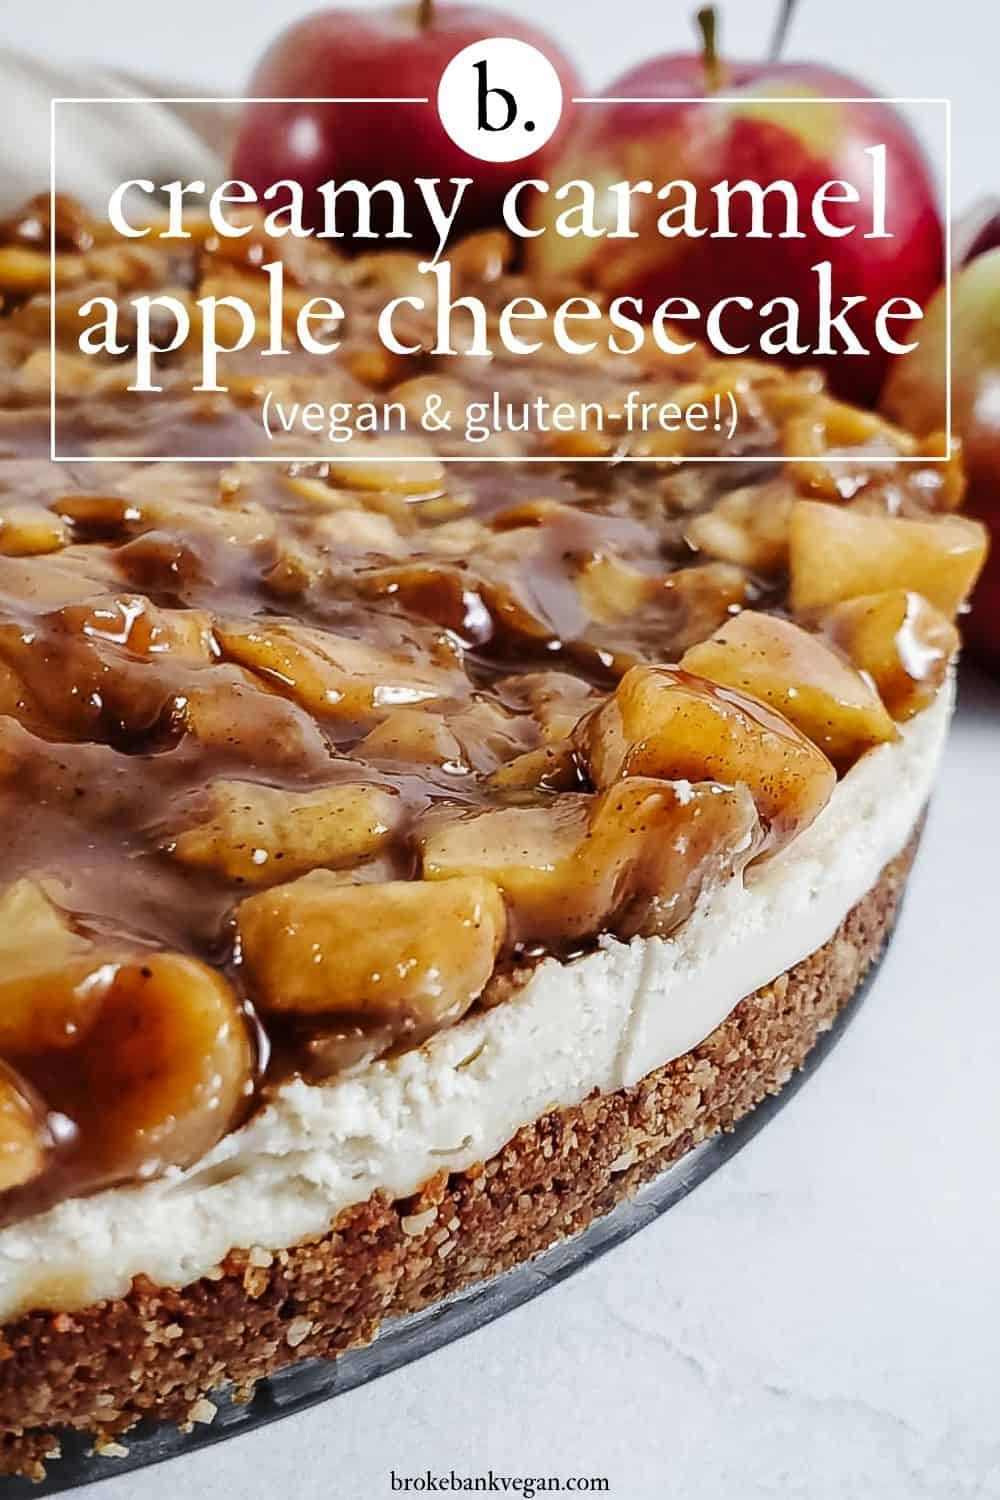 Creamy Caramel Apple Cheesecake